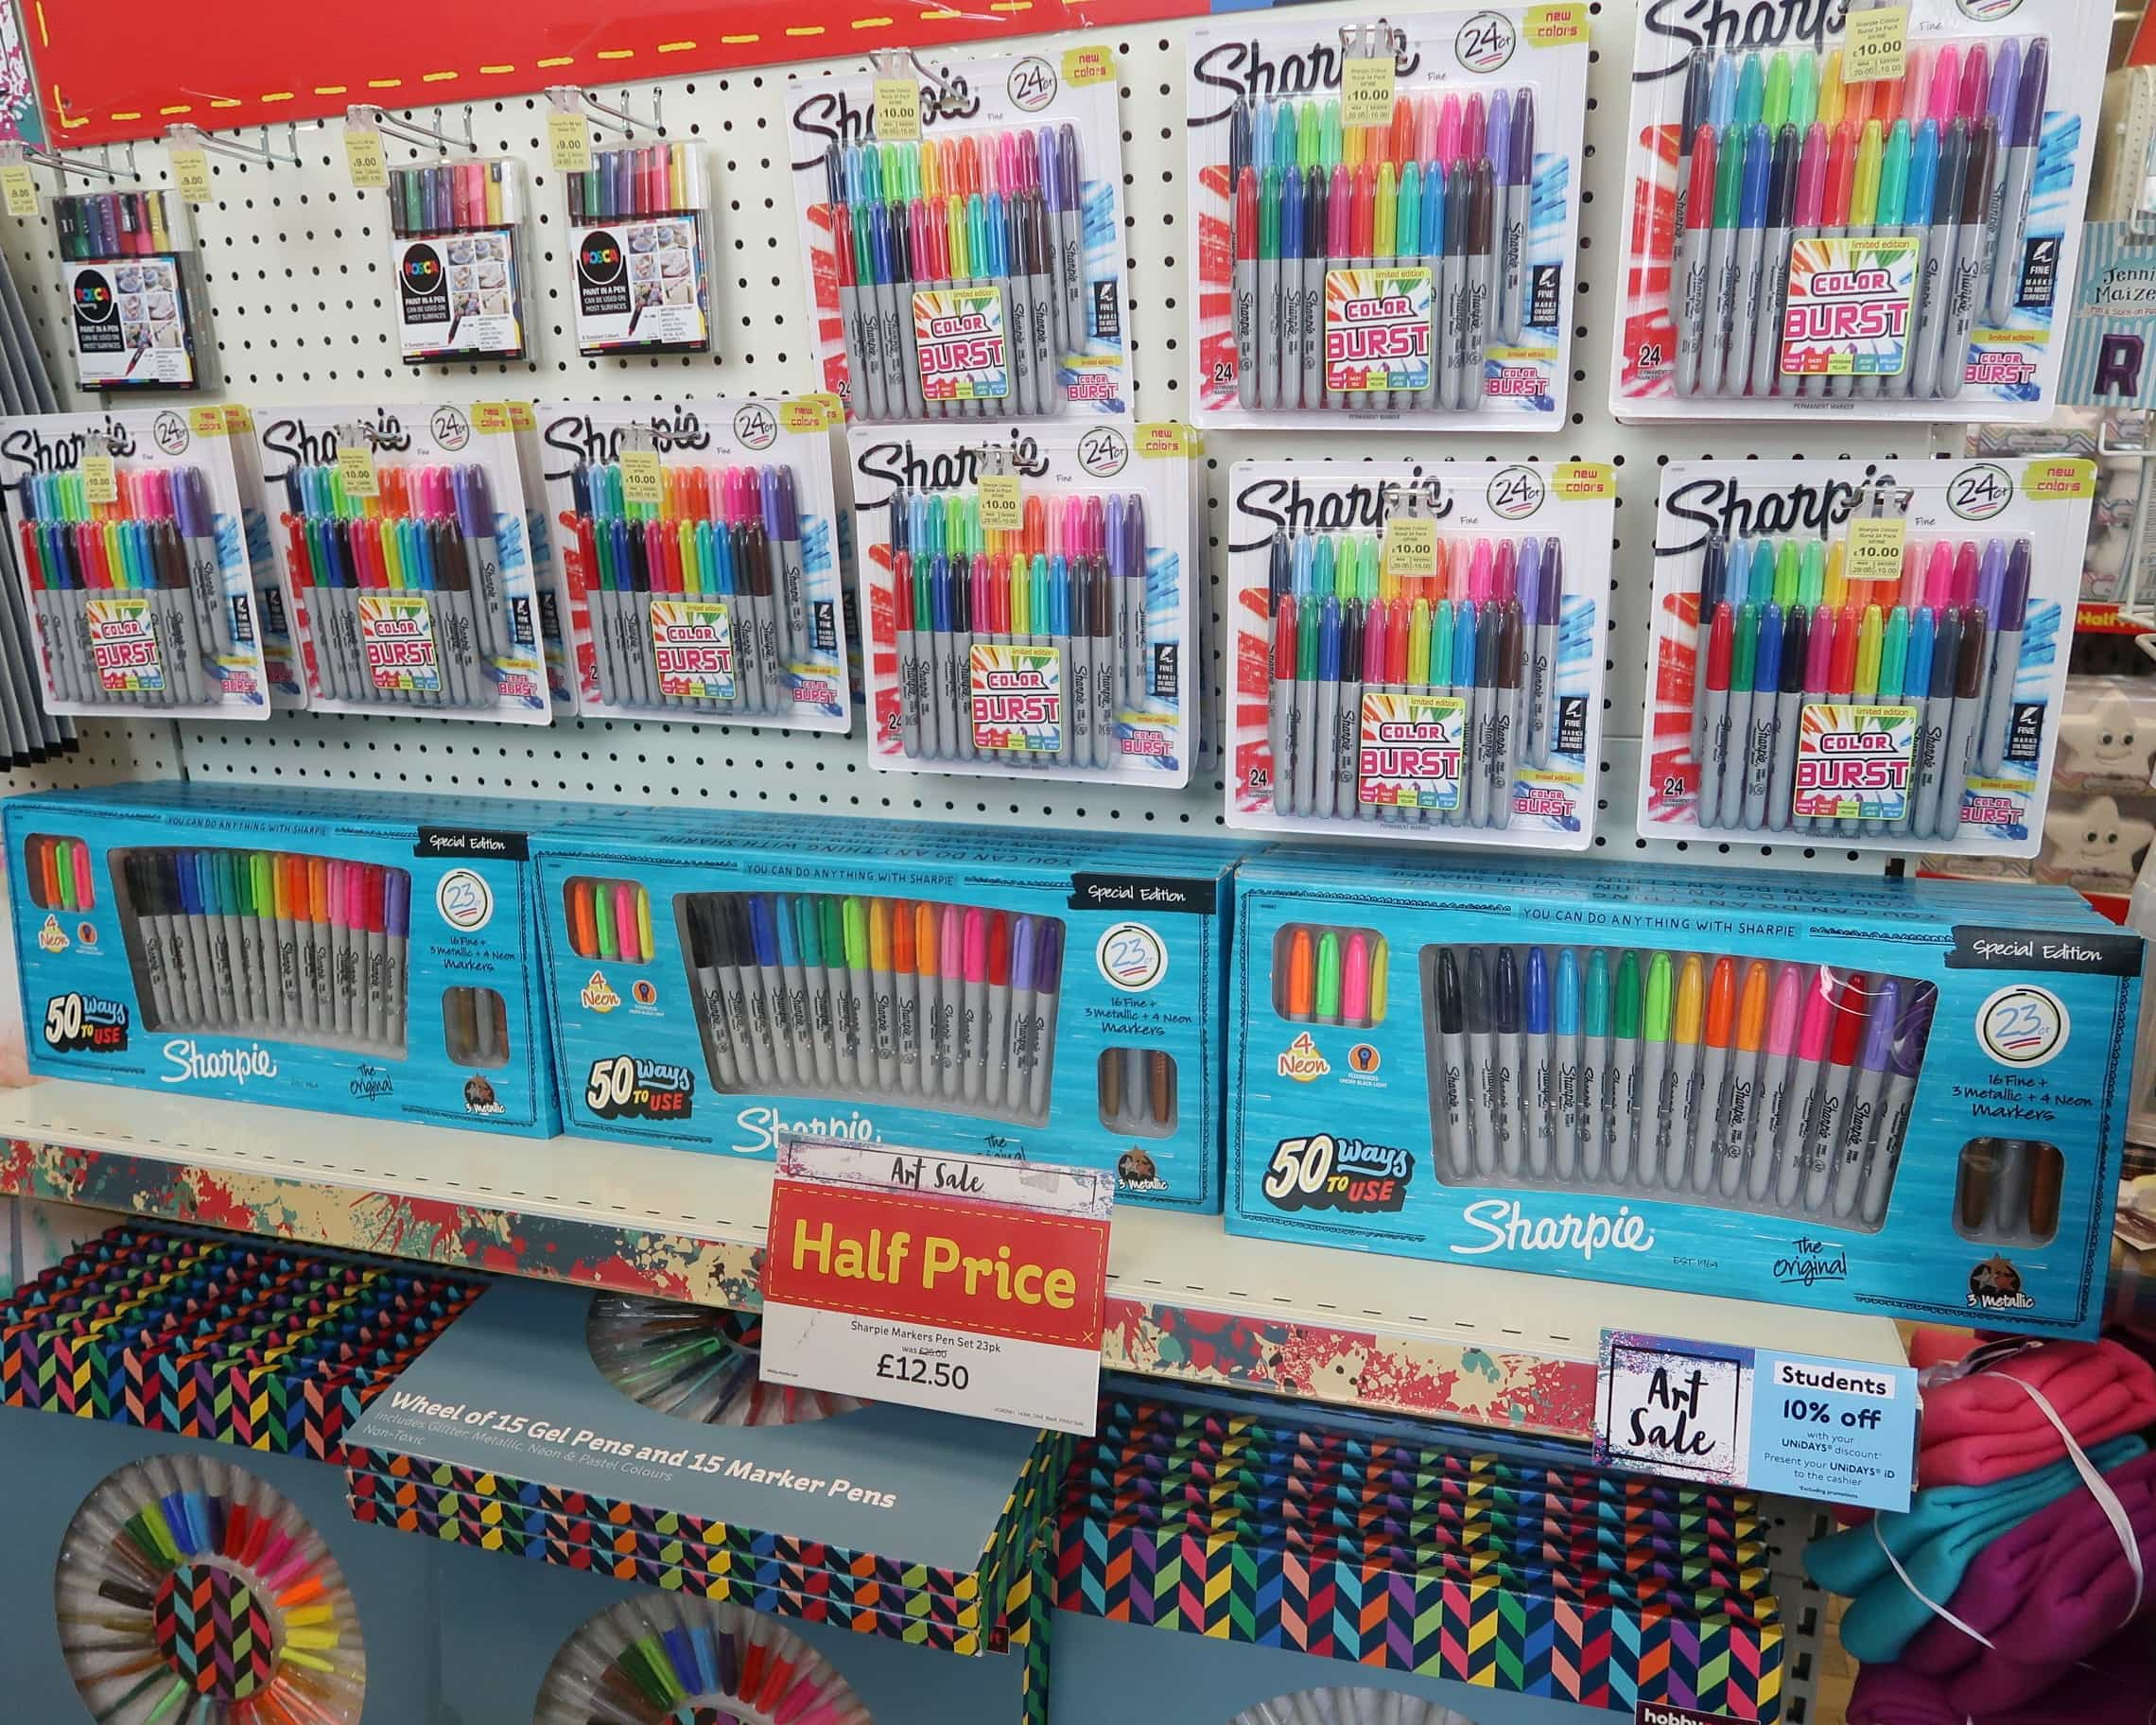 Sharpies in Hobbycraft